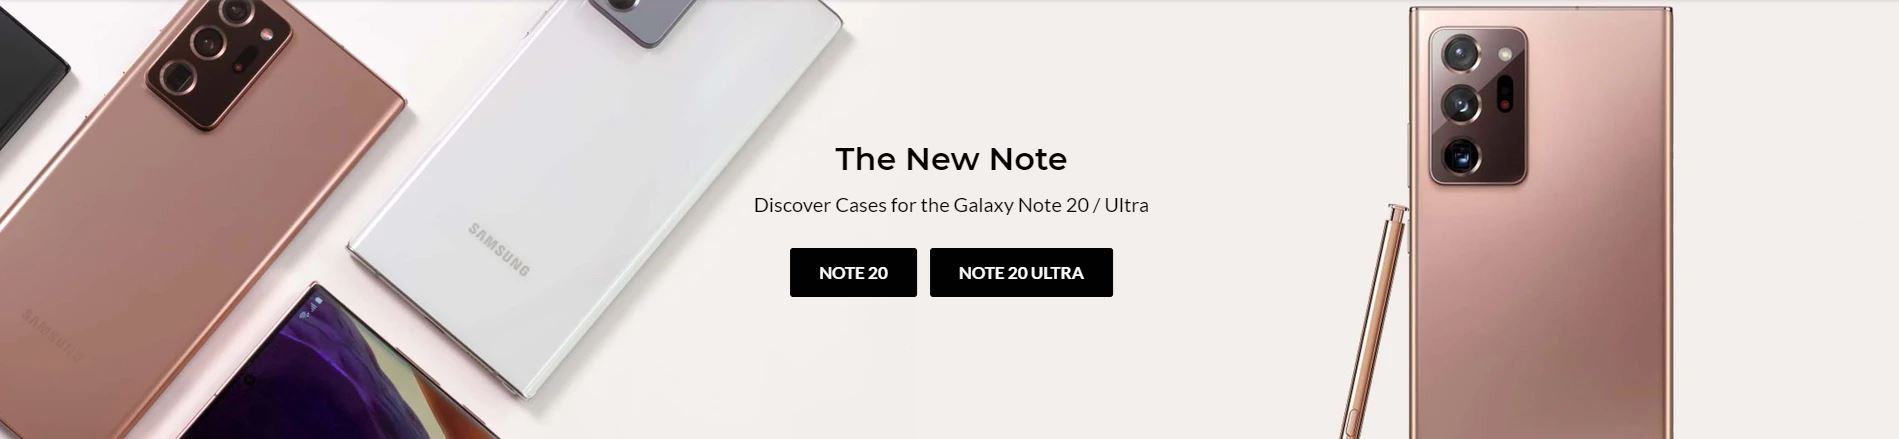 THE NEW NOTE